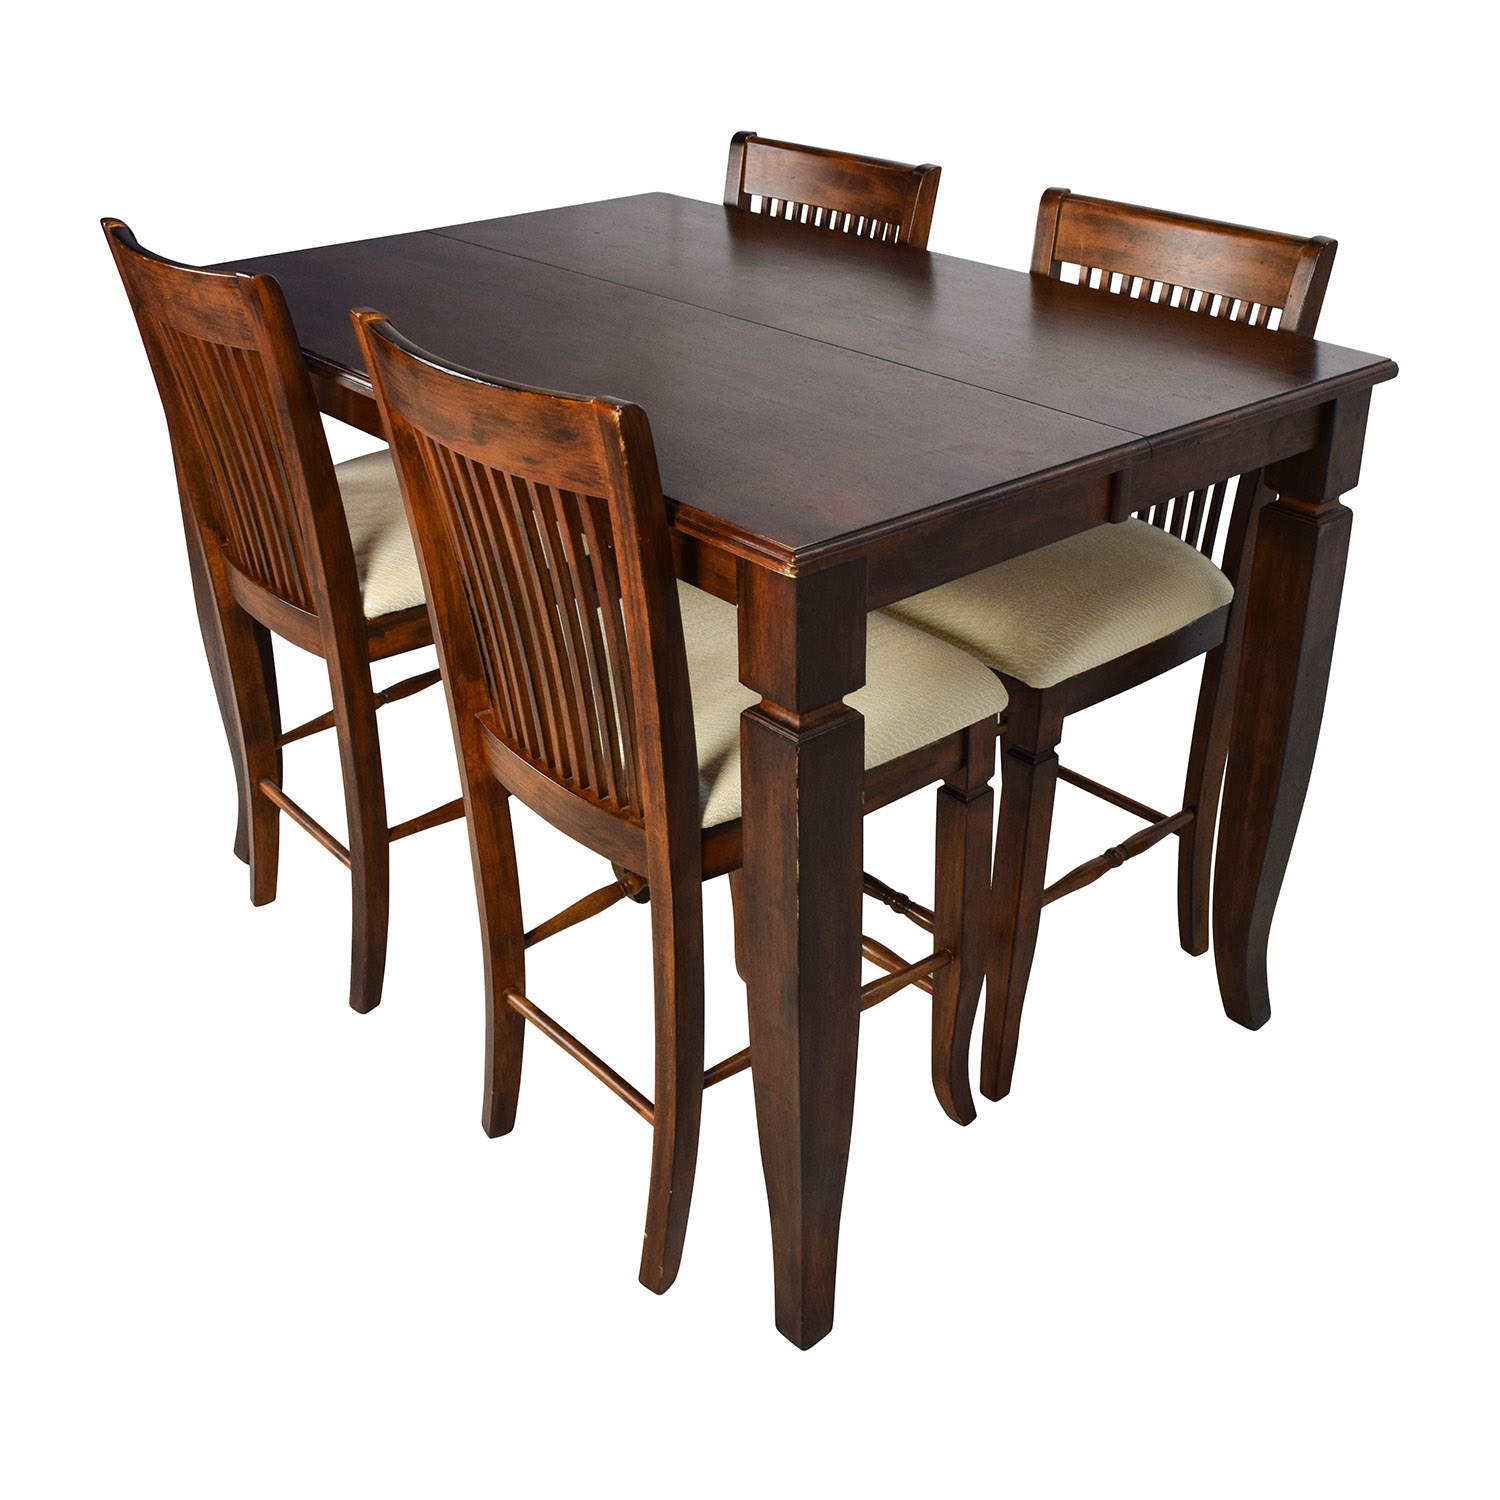 Contemporary Formal Dining Set Dining Room Set For Sale  : tall extendable dining room table set second hand from www.elivingroomfurniture.com size 1500 x 1500 jpeg 286kB